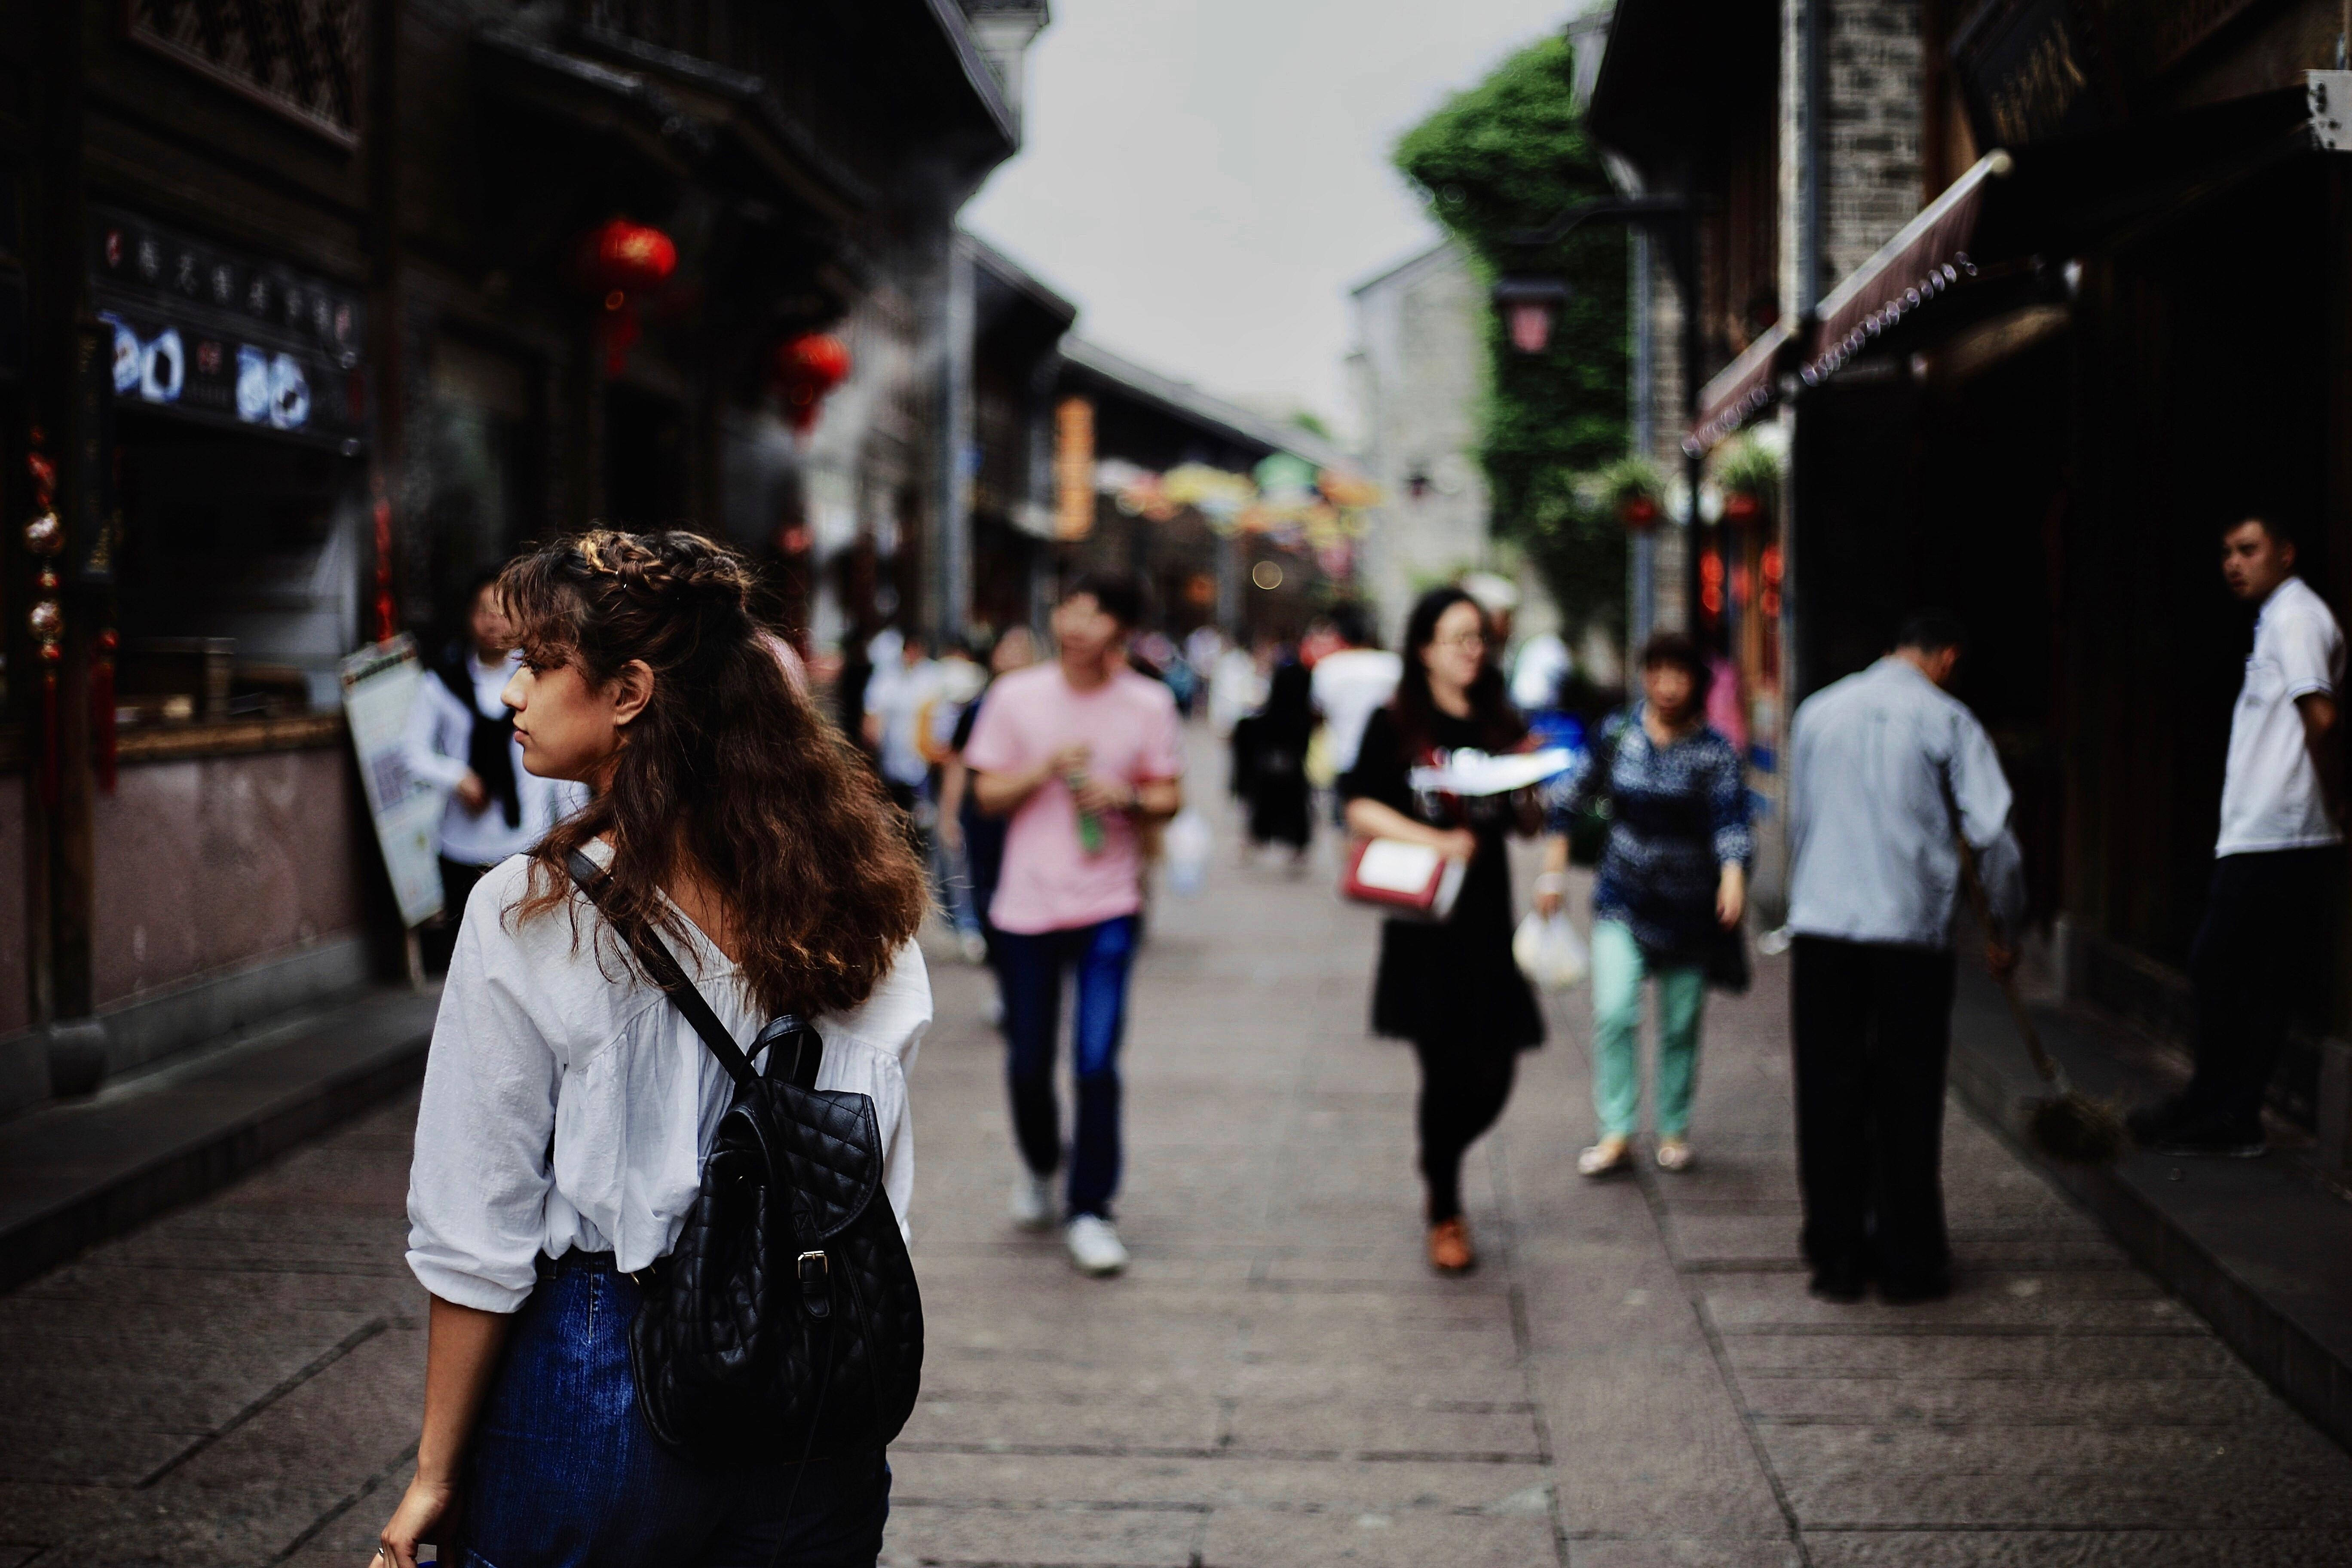 Woman walks through a diverse crowd on a busy city street